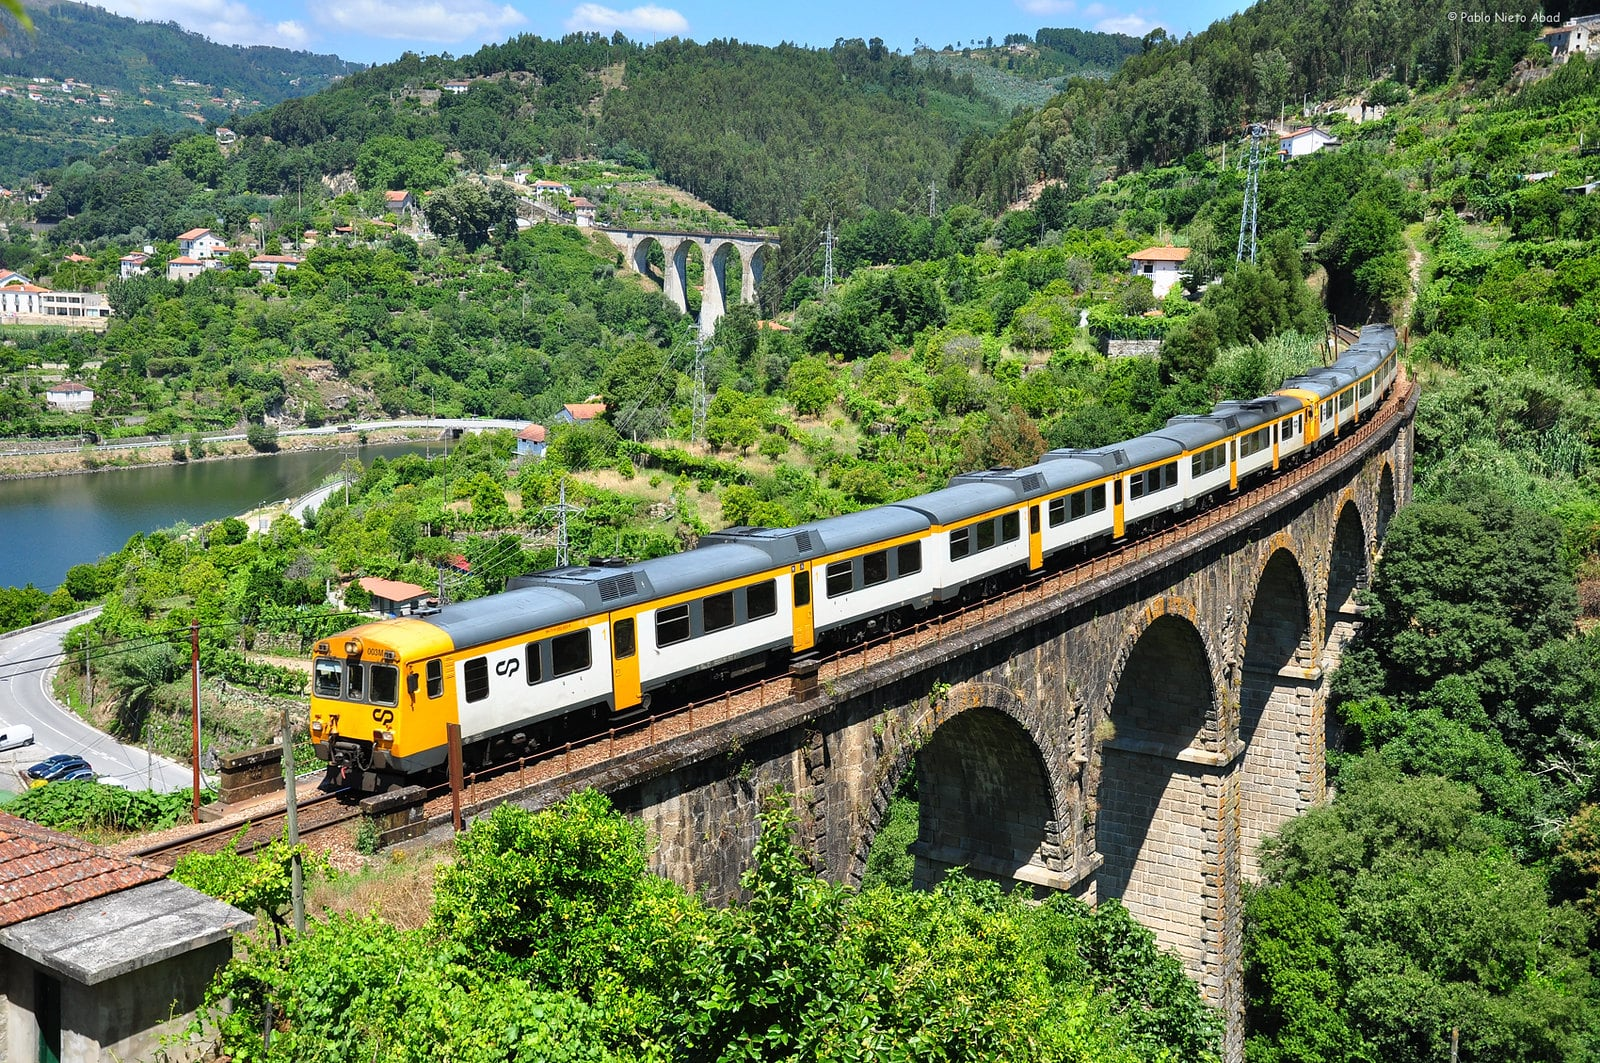 Transportation in Portugal is made easy by the country's extensive train system